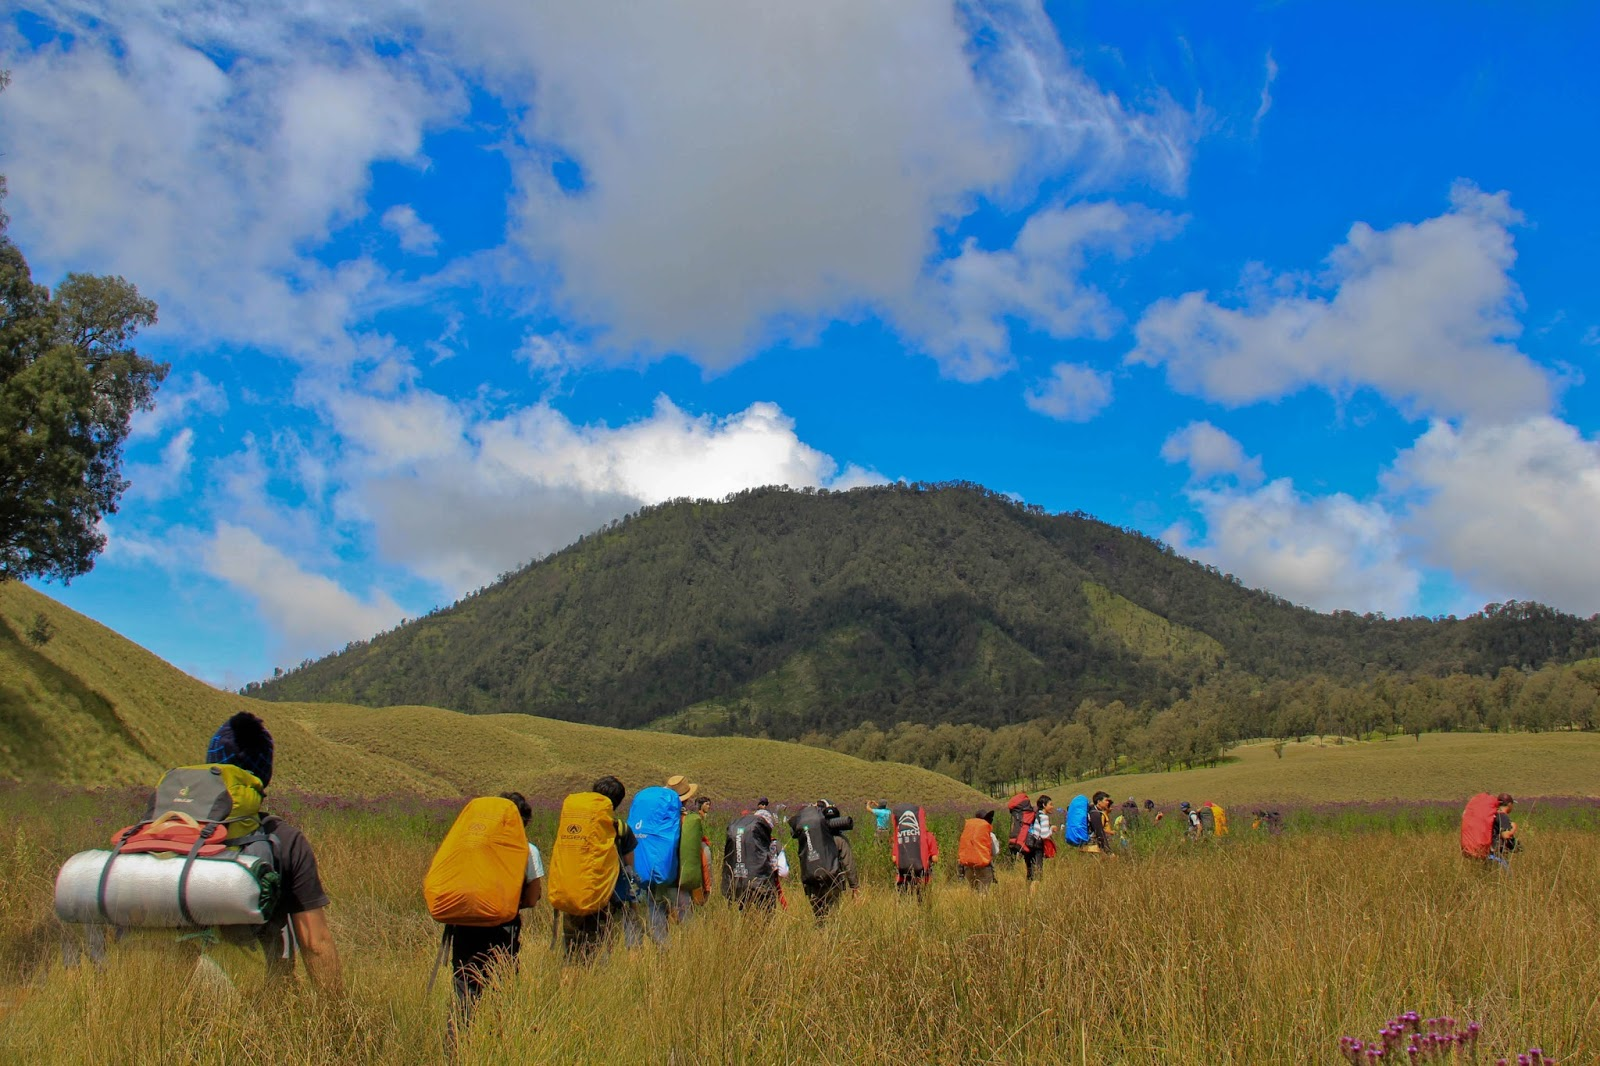 SEMERU TREKKING and MOUNT BROMO TOUR PACKAGE 5 DAYS